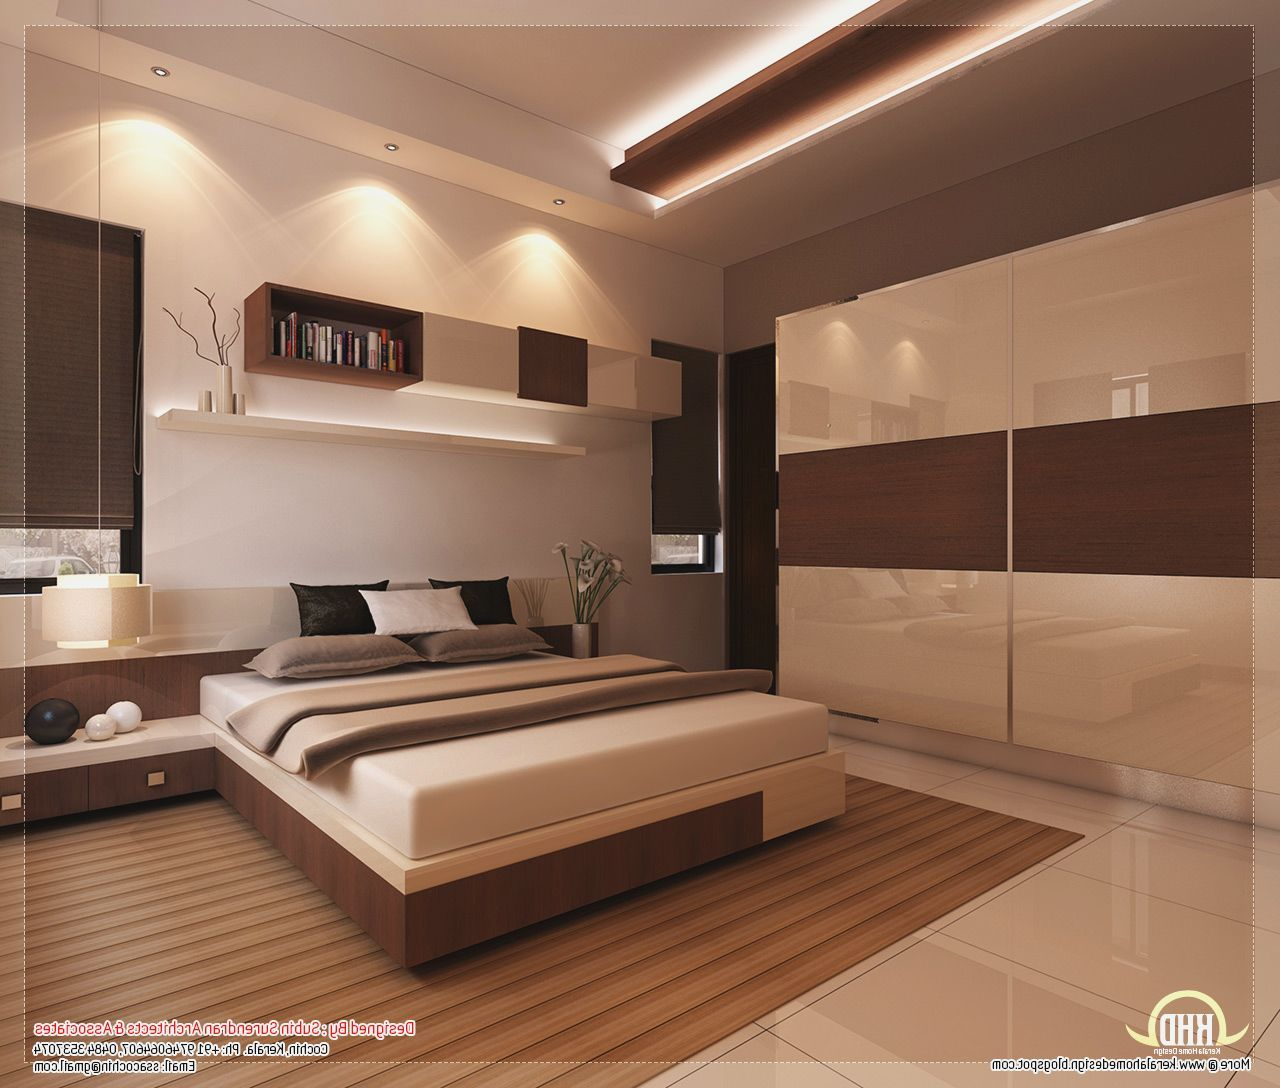 Bedroom designs india low cost more picture bedroom designs